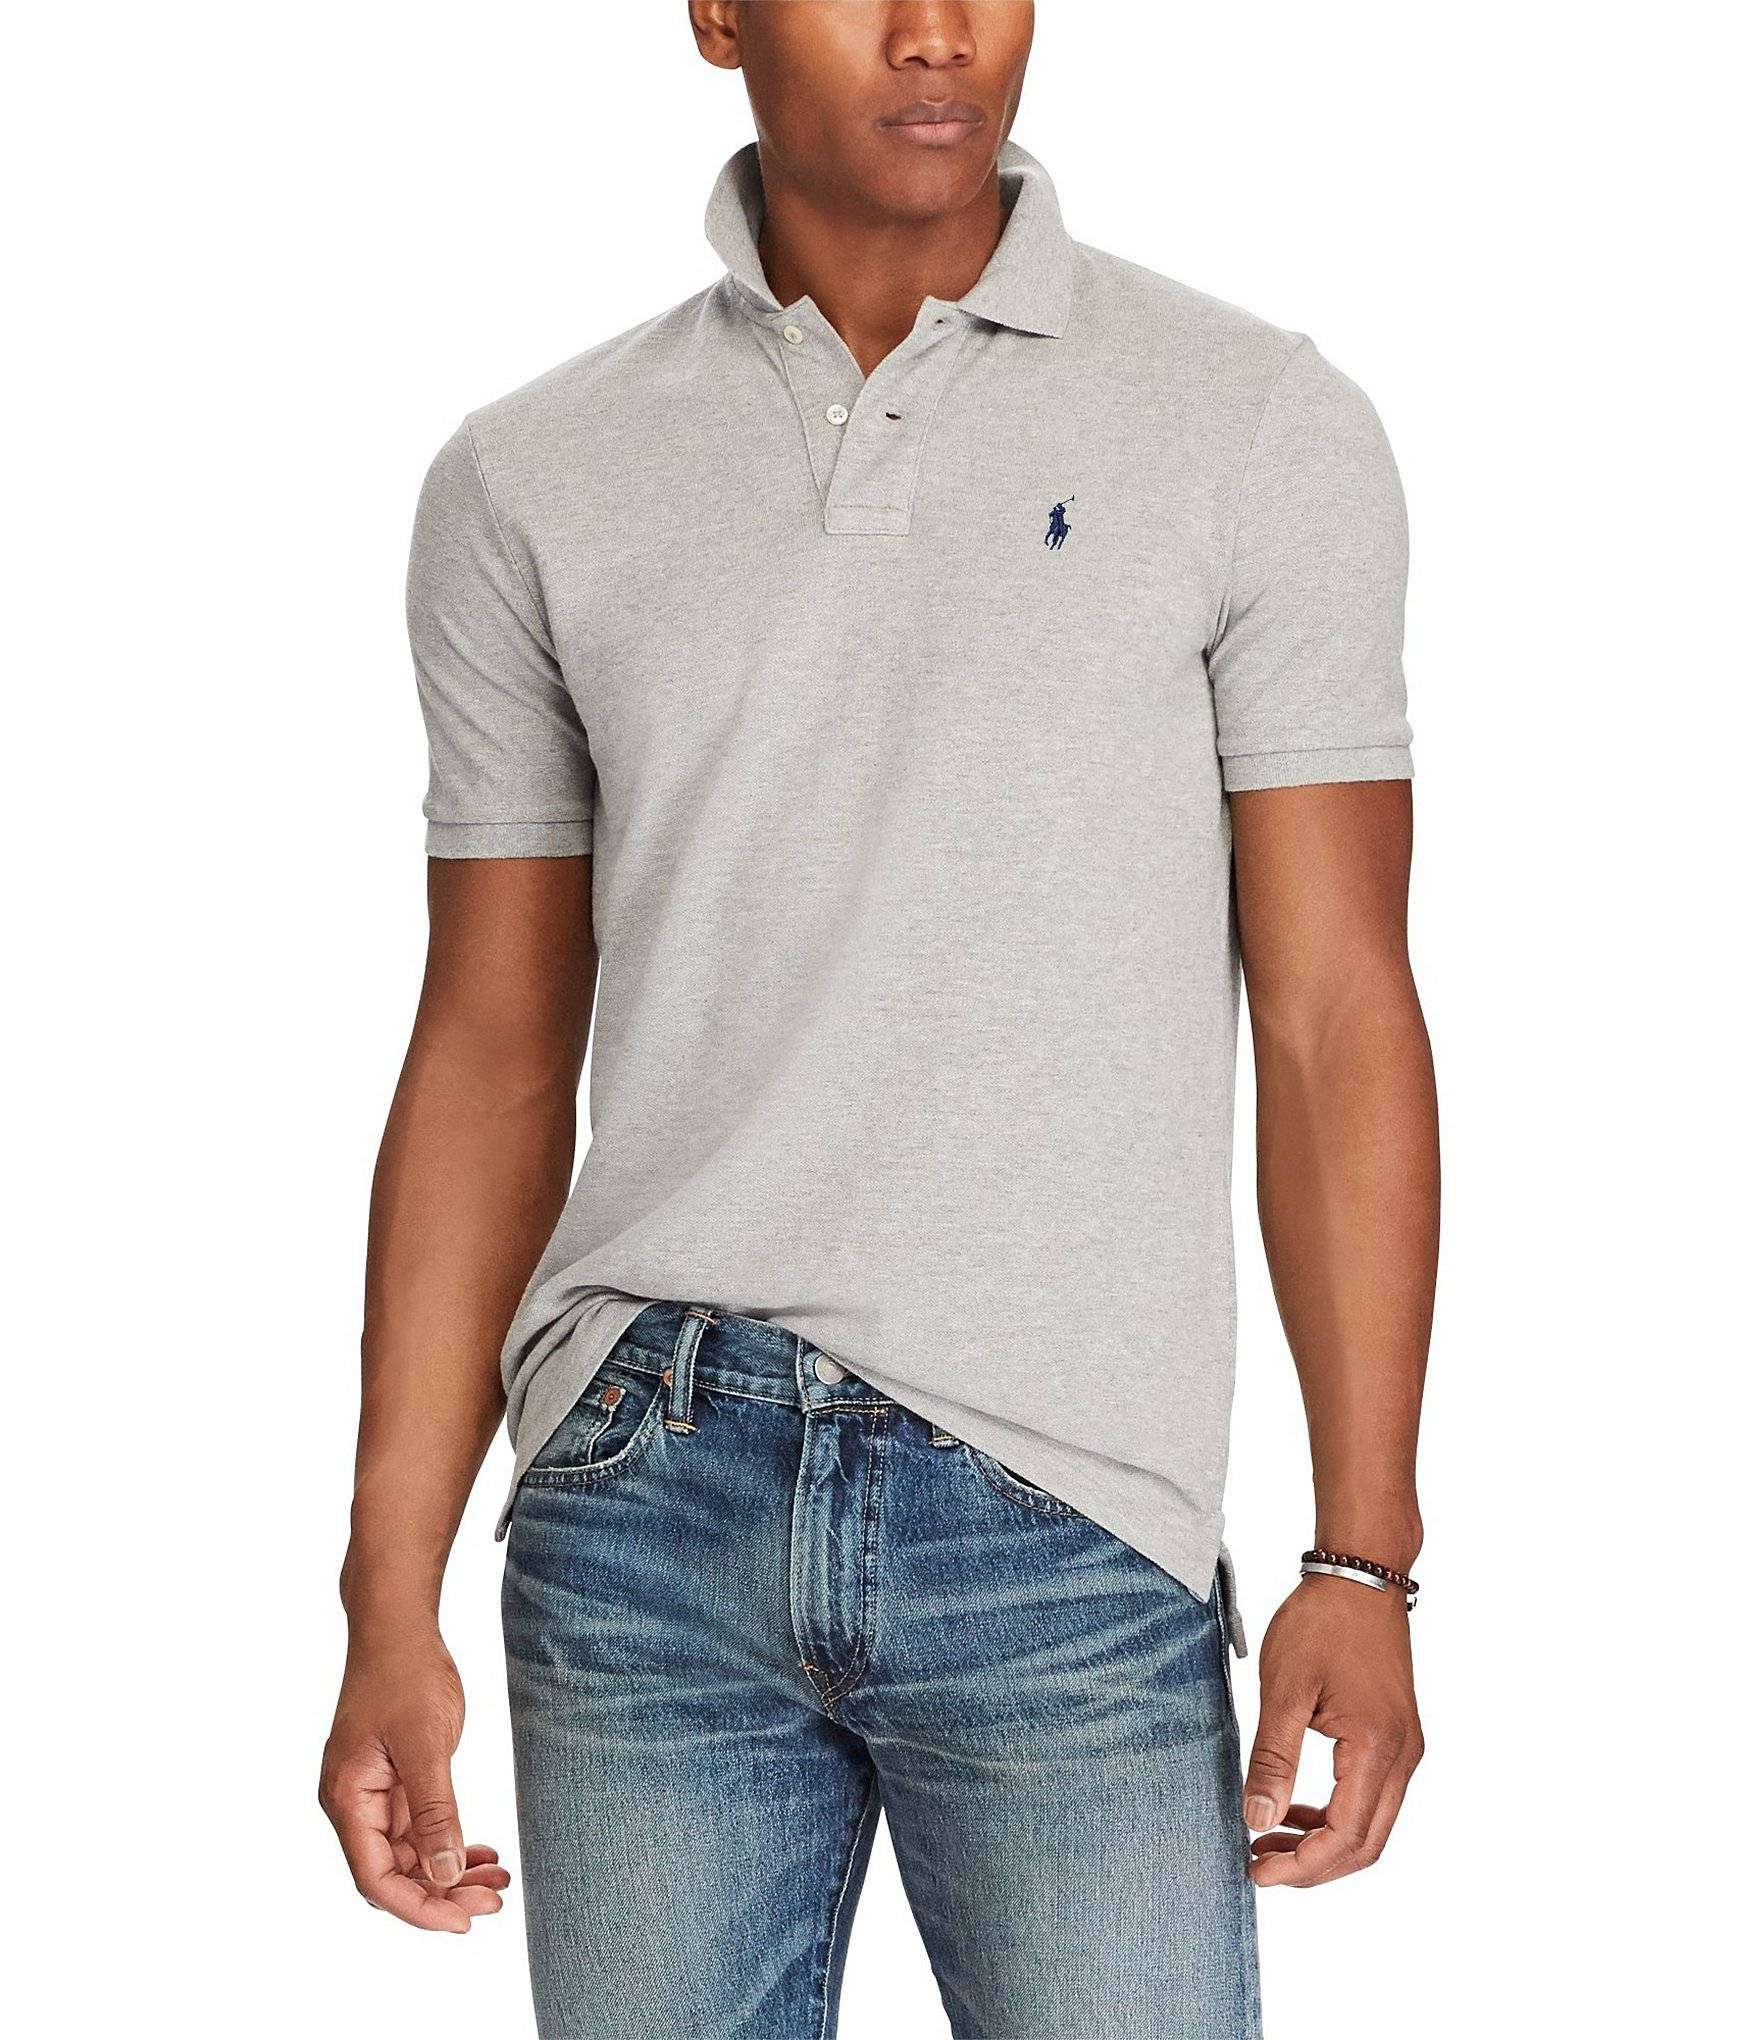 DressU Mens Non-Iron Fitted Washed Leisure Cotton Business Shirts